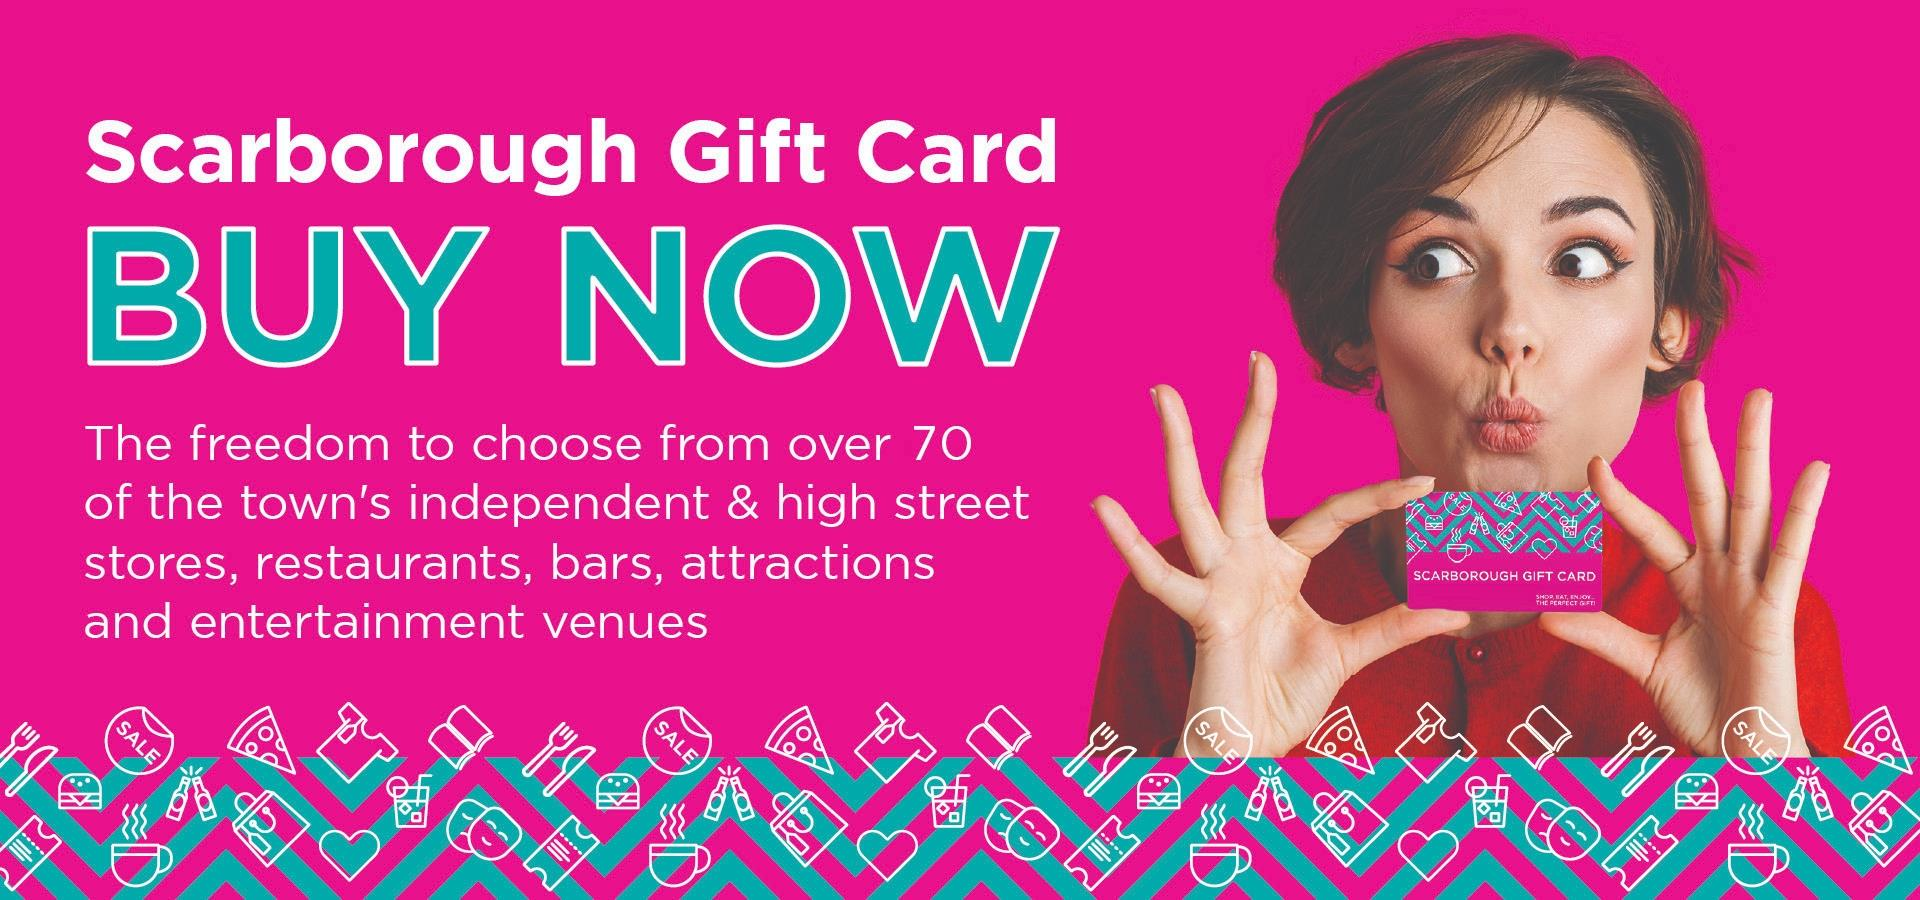 Scarborough Gift Card Graphic